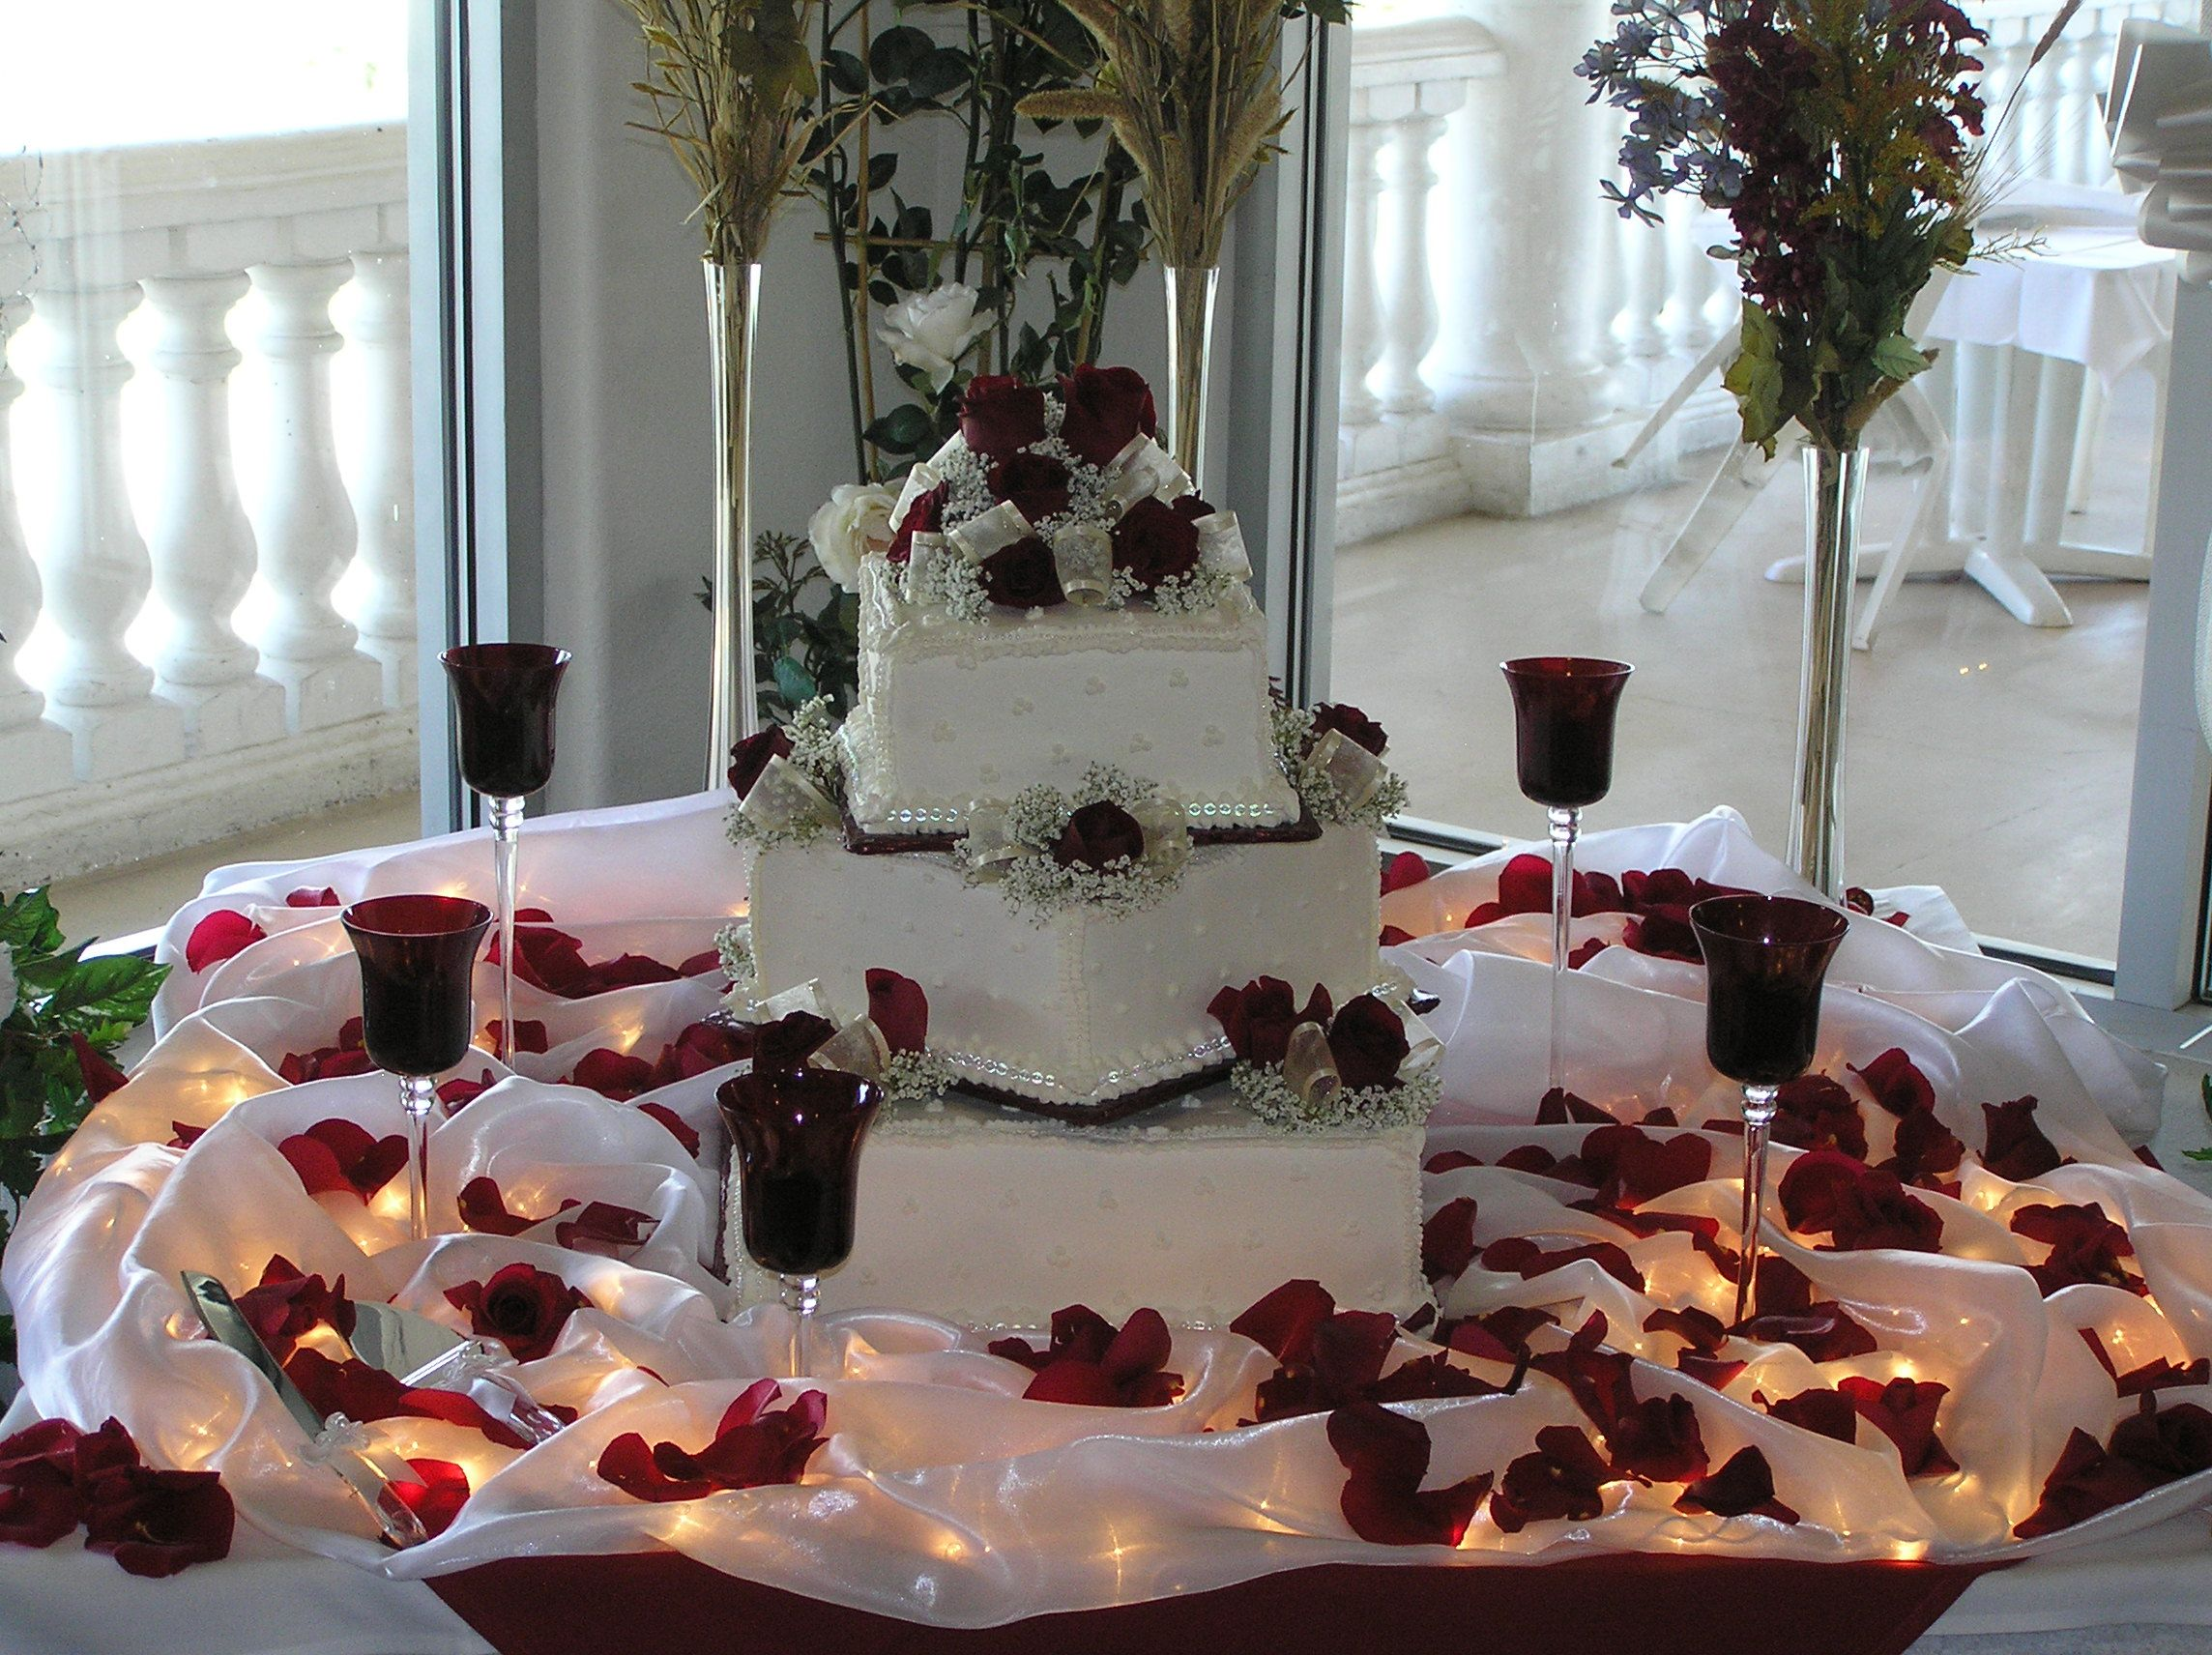 I like the roses and lighting around the cake but prefer a cute and simple cake table lamps ideas burgundy rose wedding cake table lamps ideas geotapseo Gallery